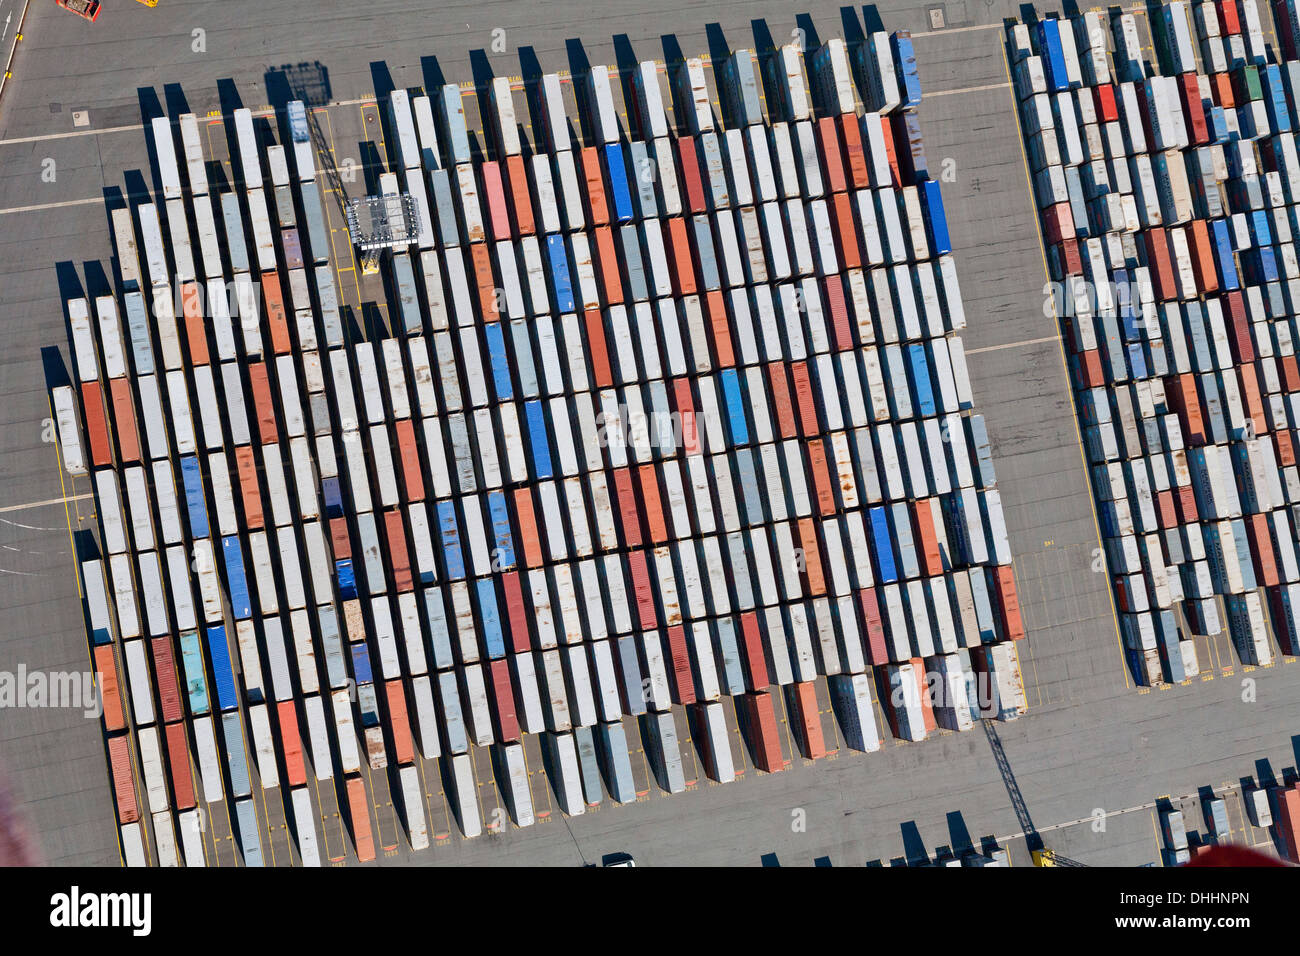 Aerial view of shipping containers in Bremerhaven port, Bremen, Northern Germany Stock Photo